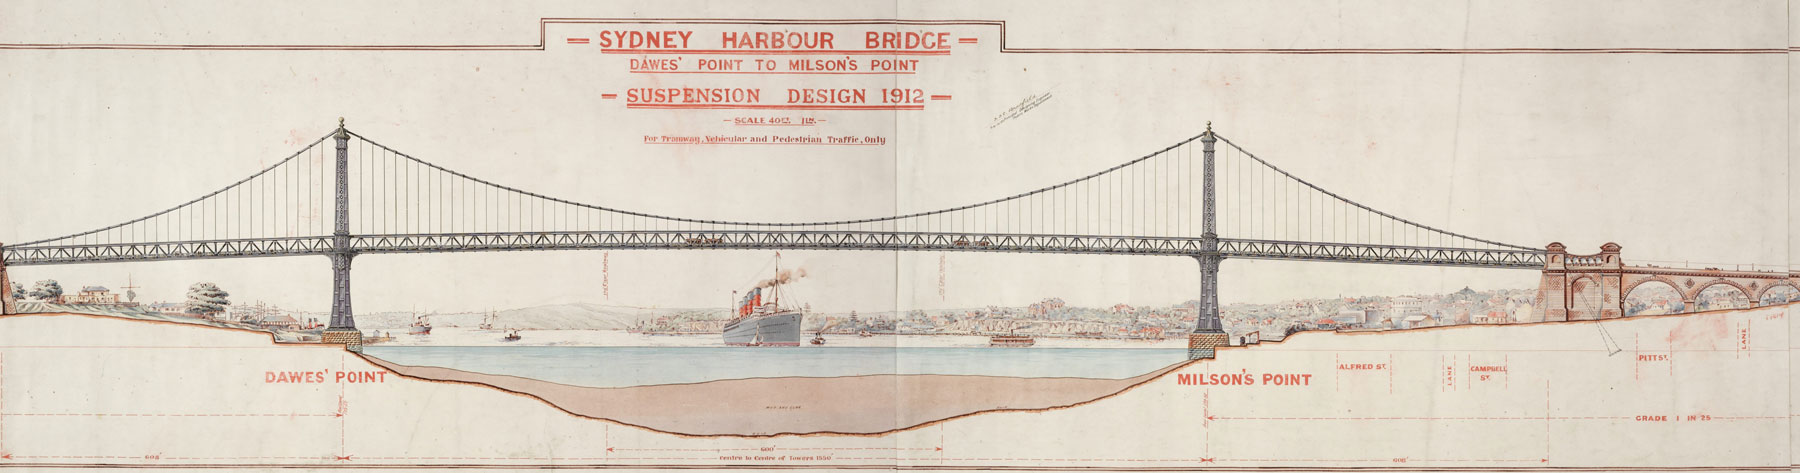 Sydney Harbour Bridge, Dawes' Point to Milson's Point, suspension design 1912 ... for tramway, vehicular and pedestrian traffic only. [and] (Cross section near tower), 1912 / J. J. C. Bradfield